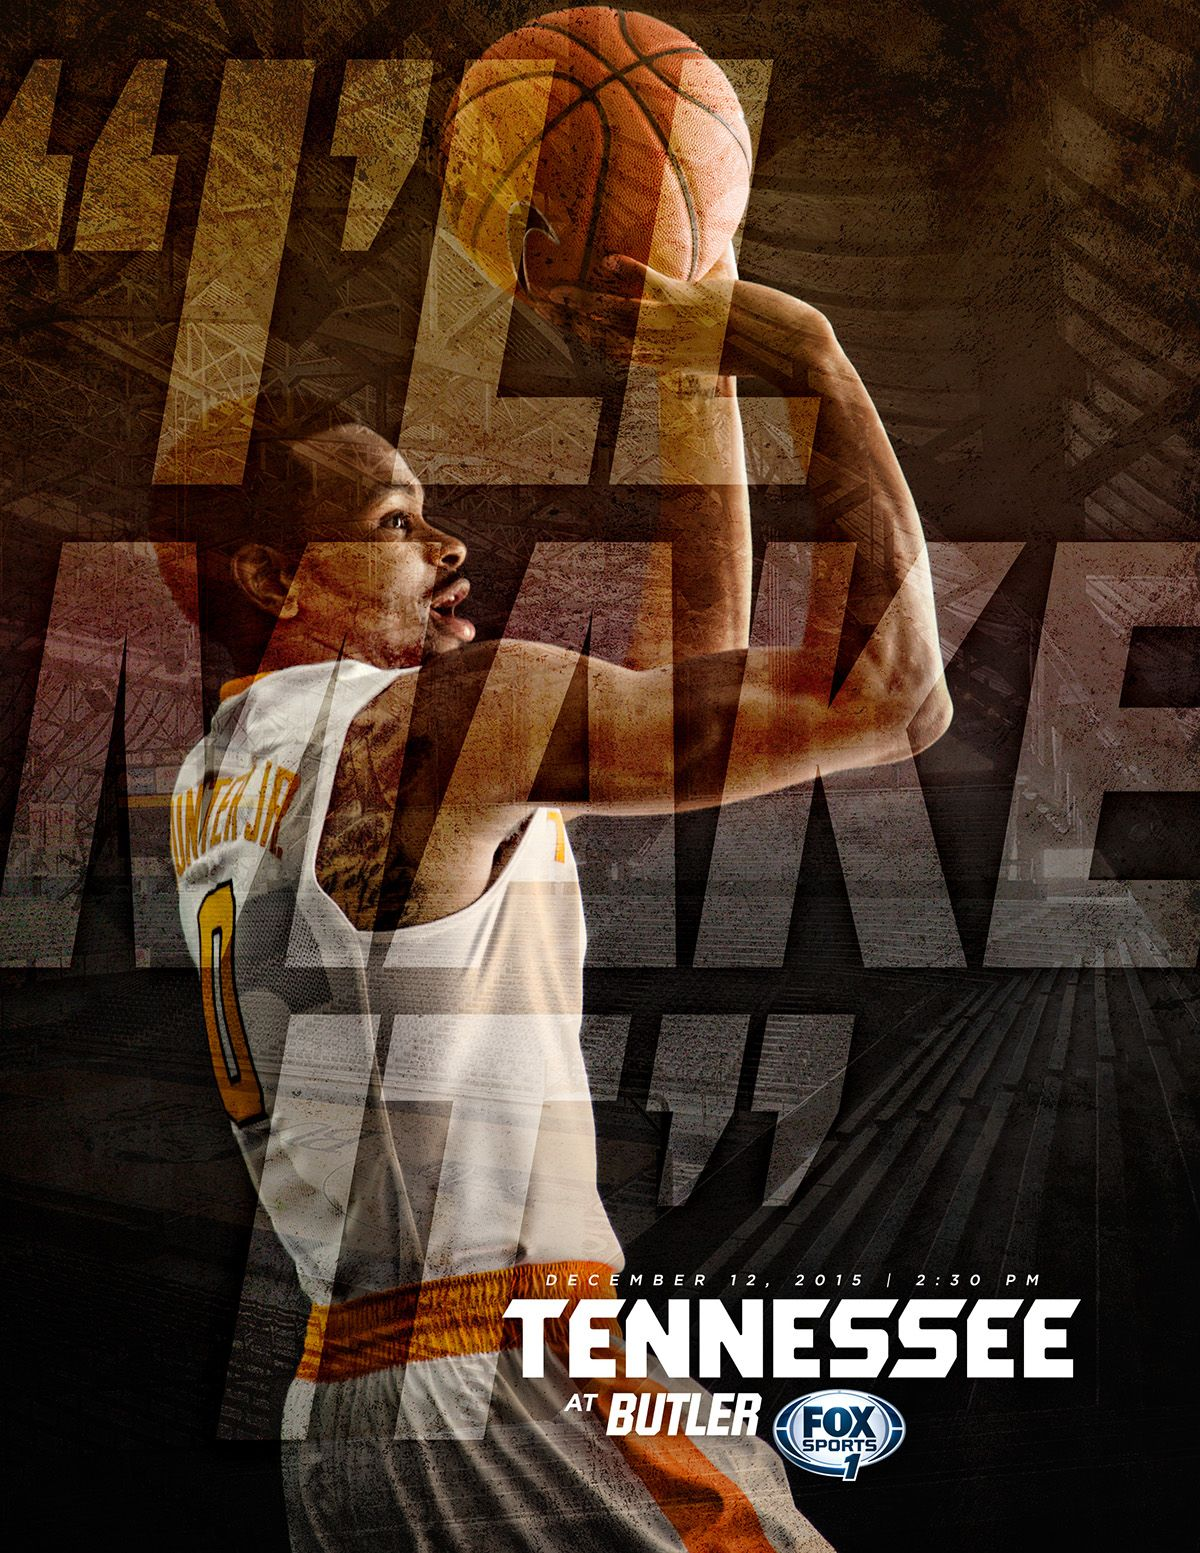 Tennessee Basketball Game Previews (2015-16) on Behance